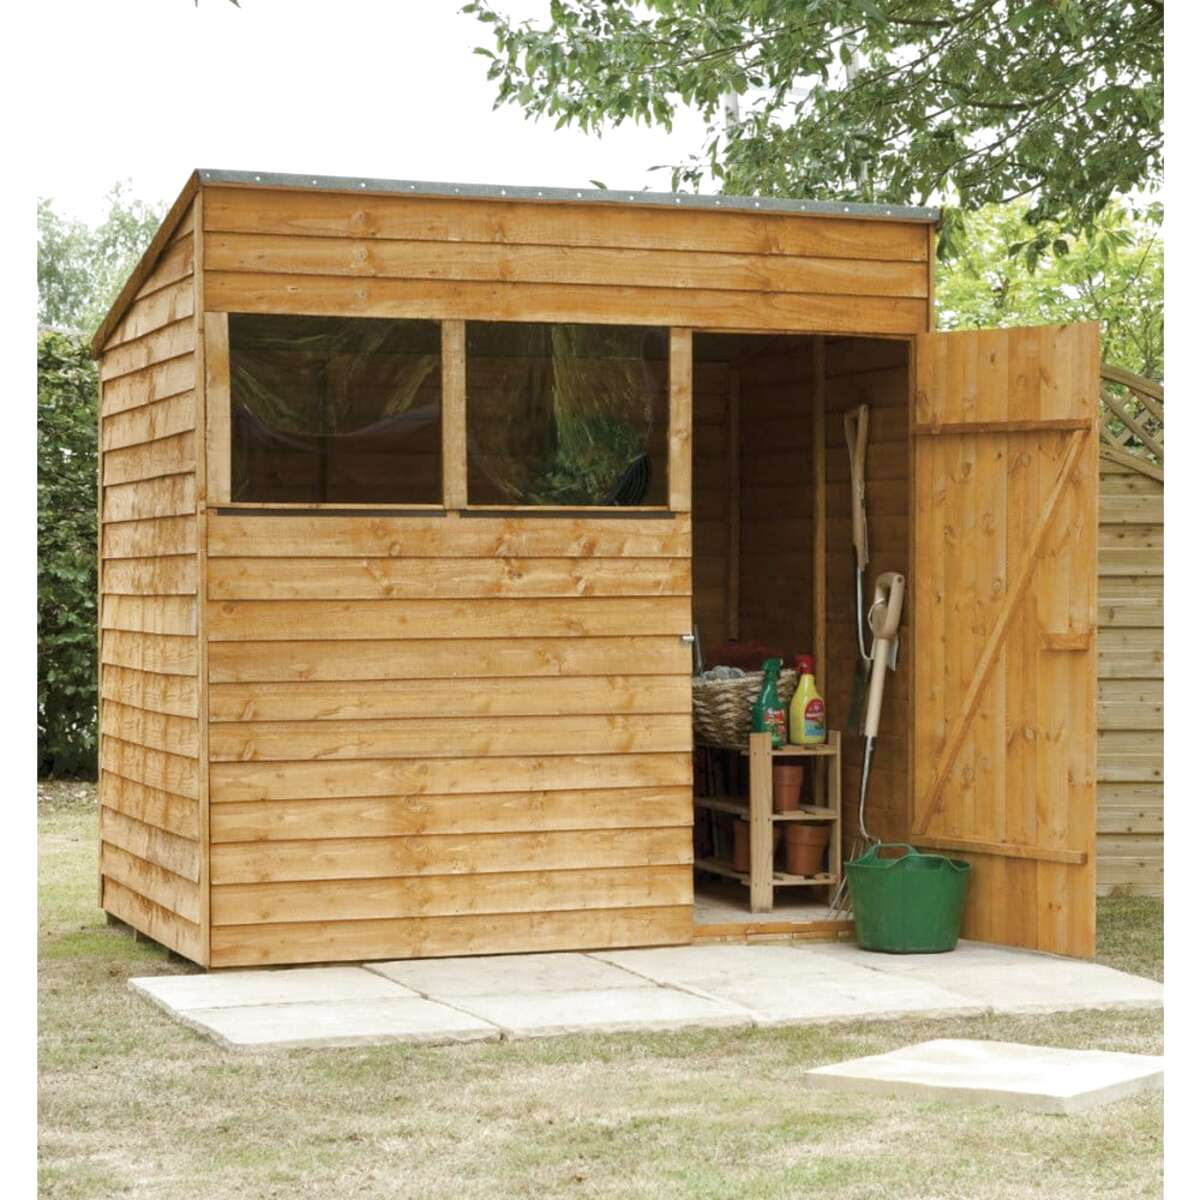 7x5 shed for sale